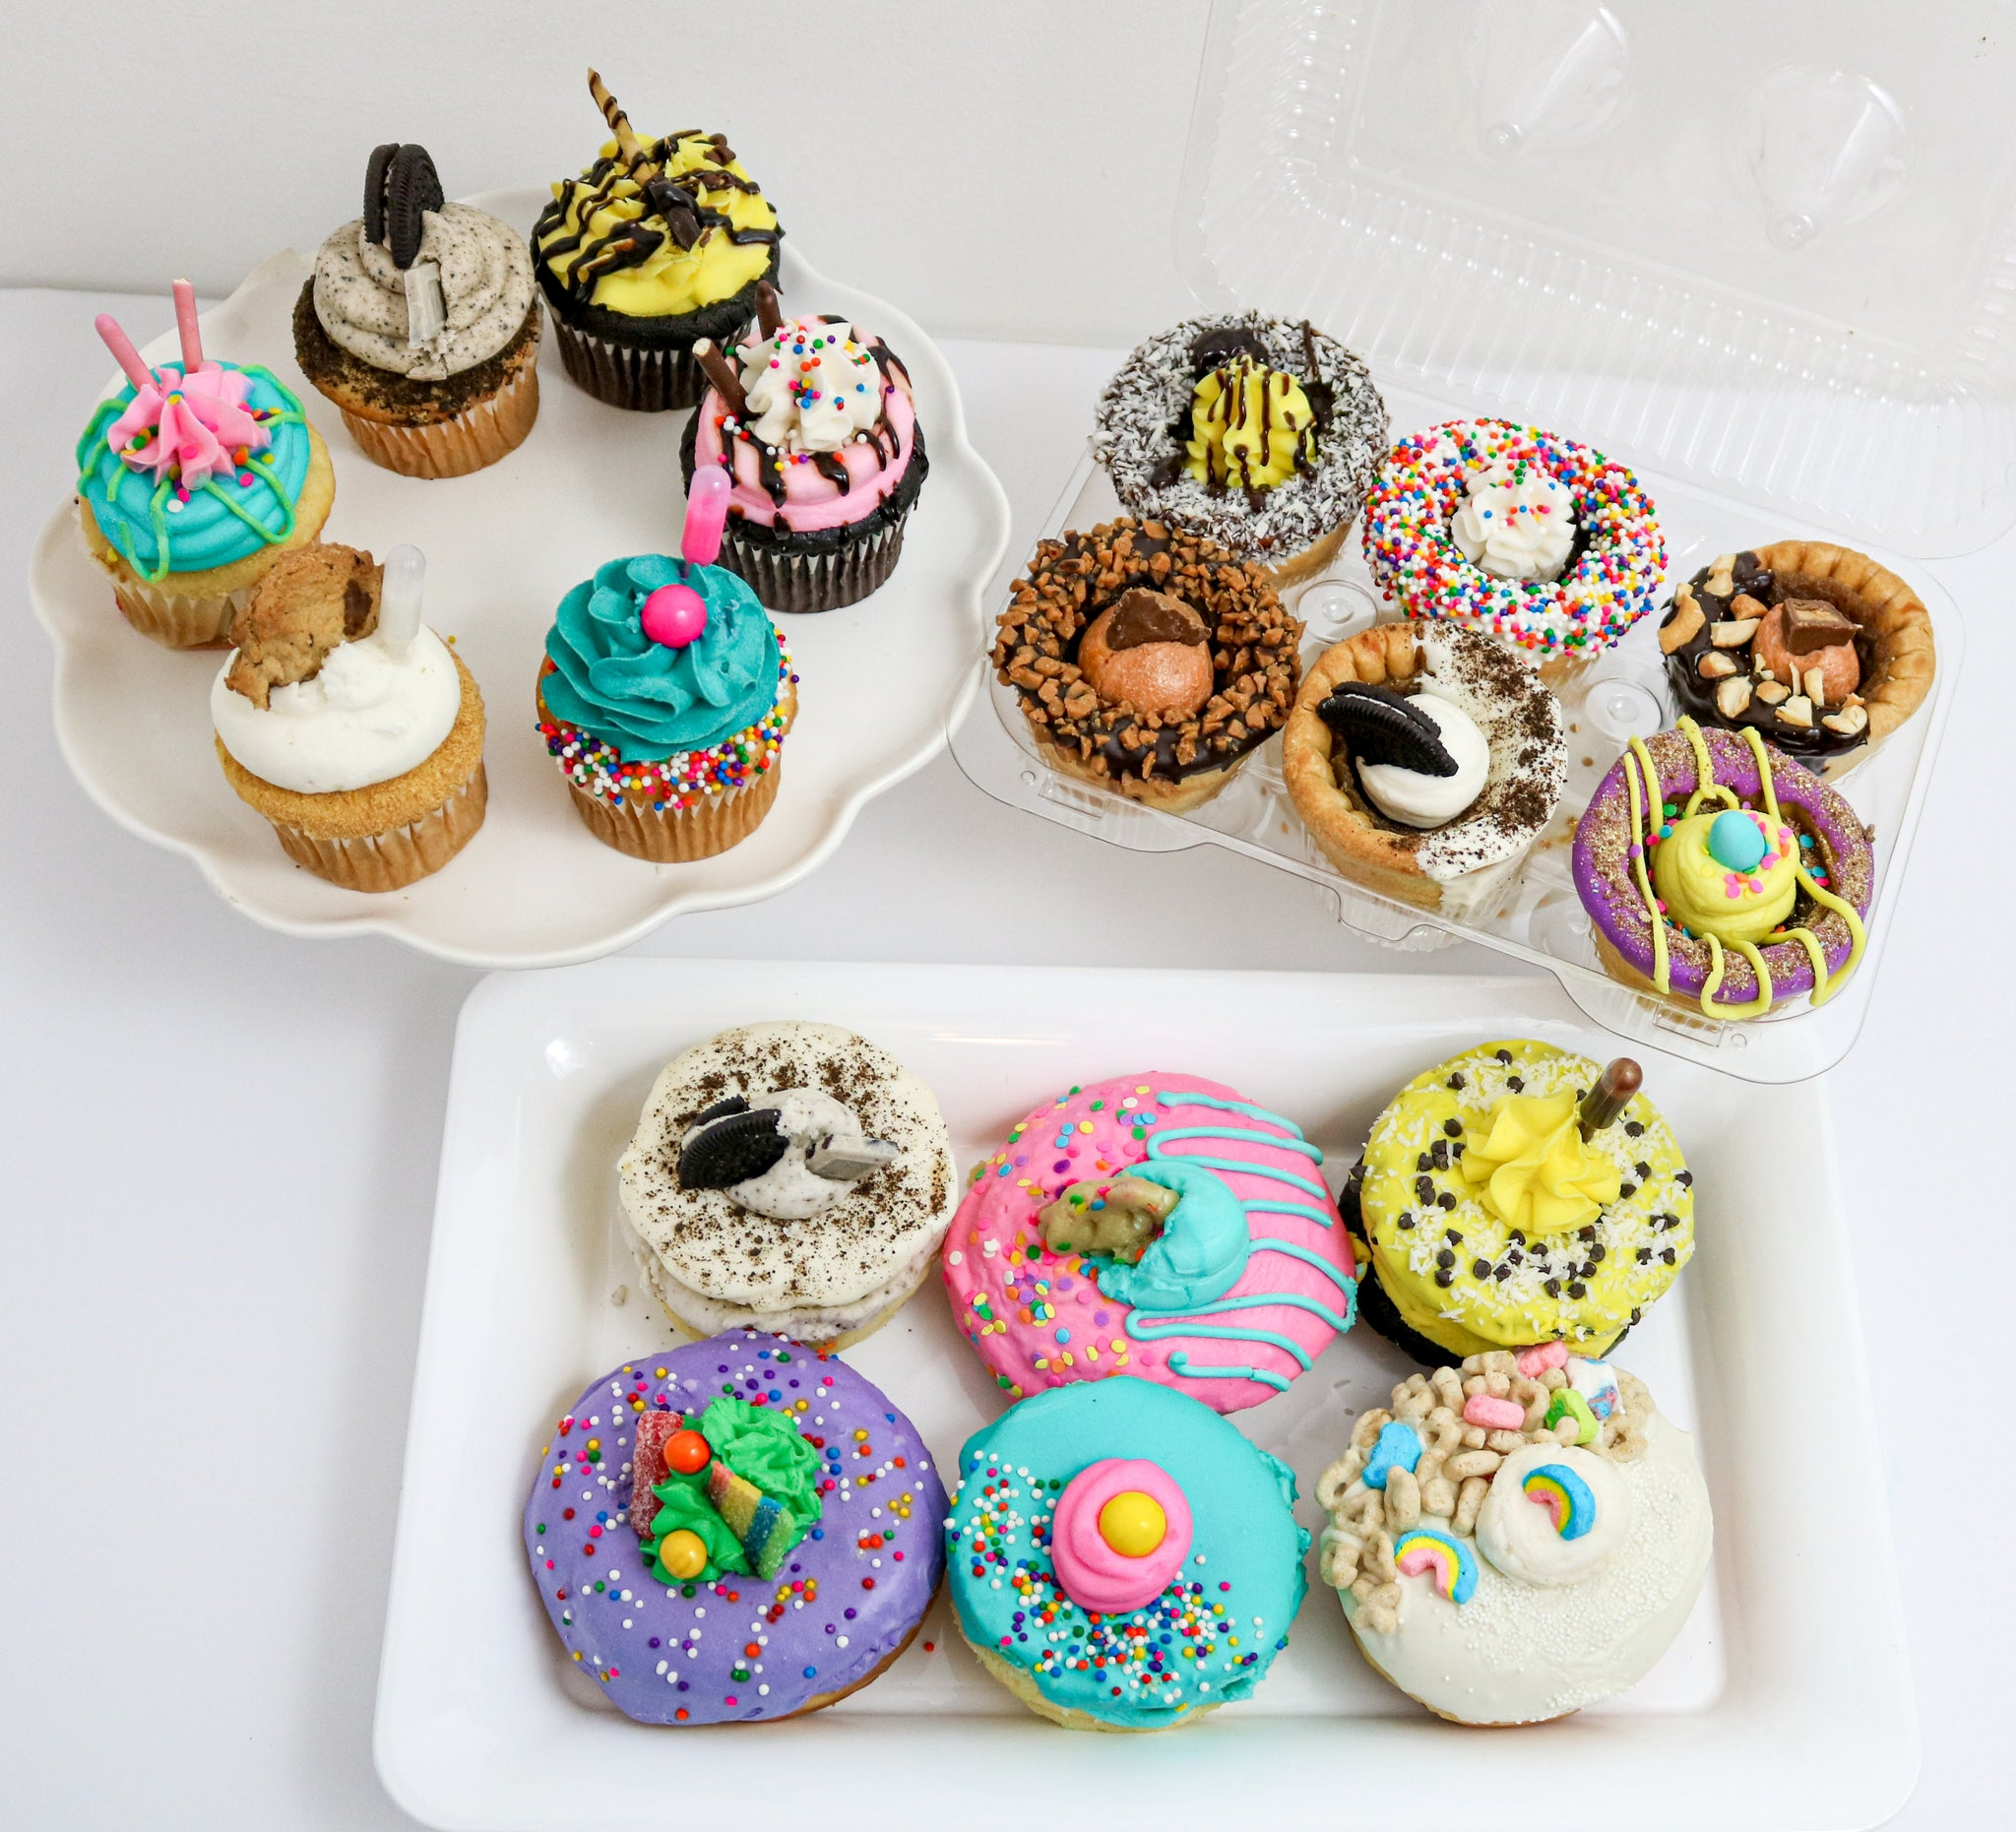 The Triple Threat Party Pack (6 donuts, 6 cupcakes, 6 tarts)